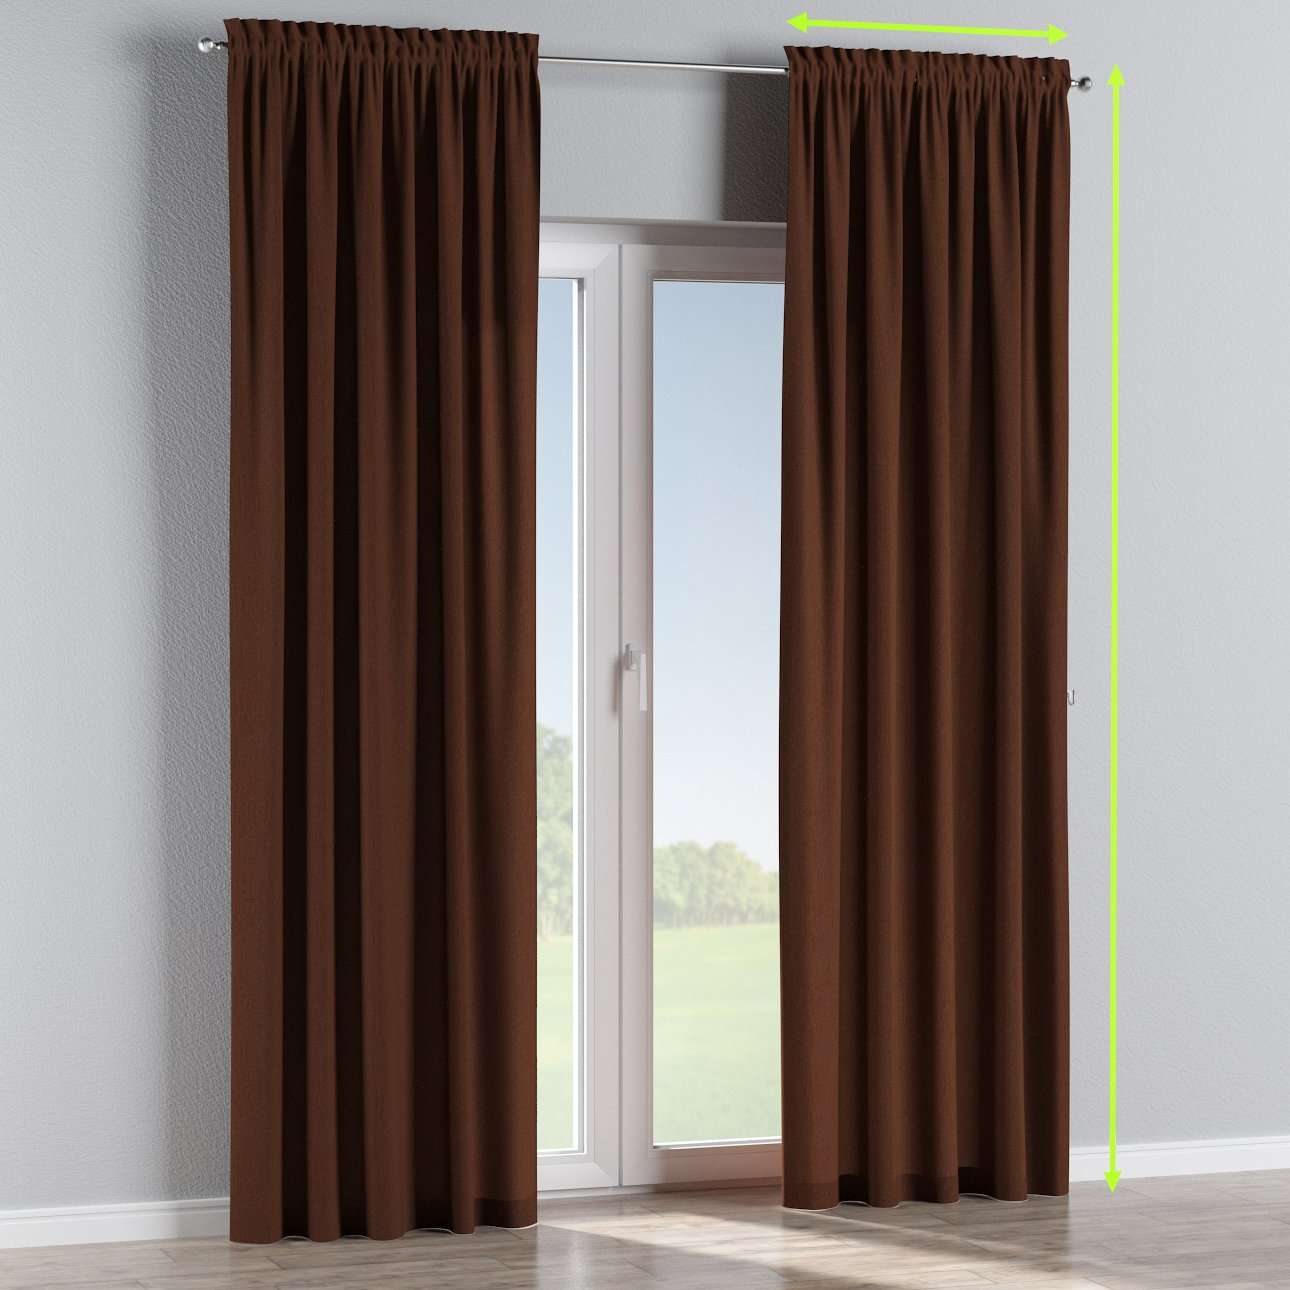 Slot and frill lined curtains in collection Chenille, fabric: 702-18